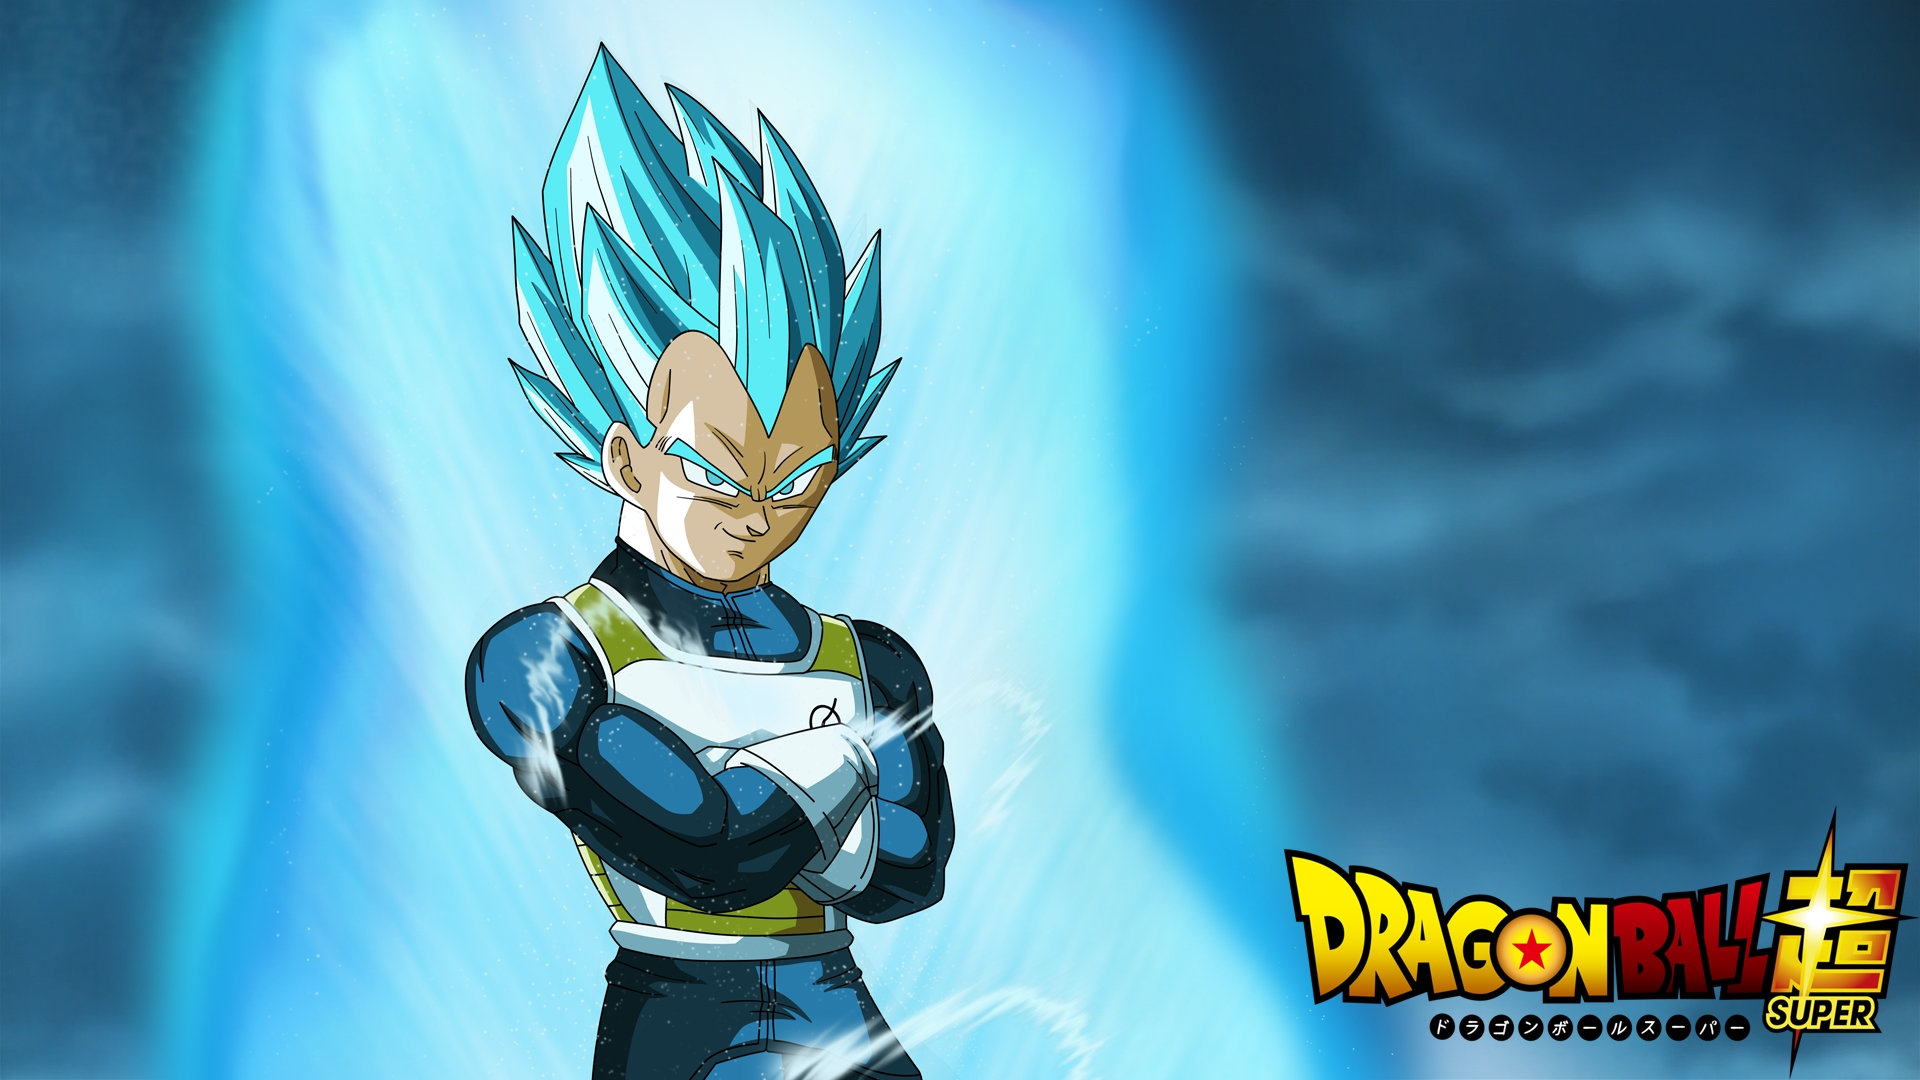 293 vegeta (dragon ball) hd wallpapers | background images